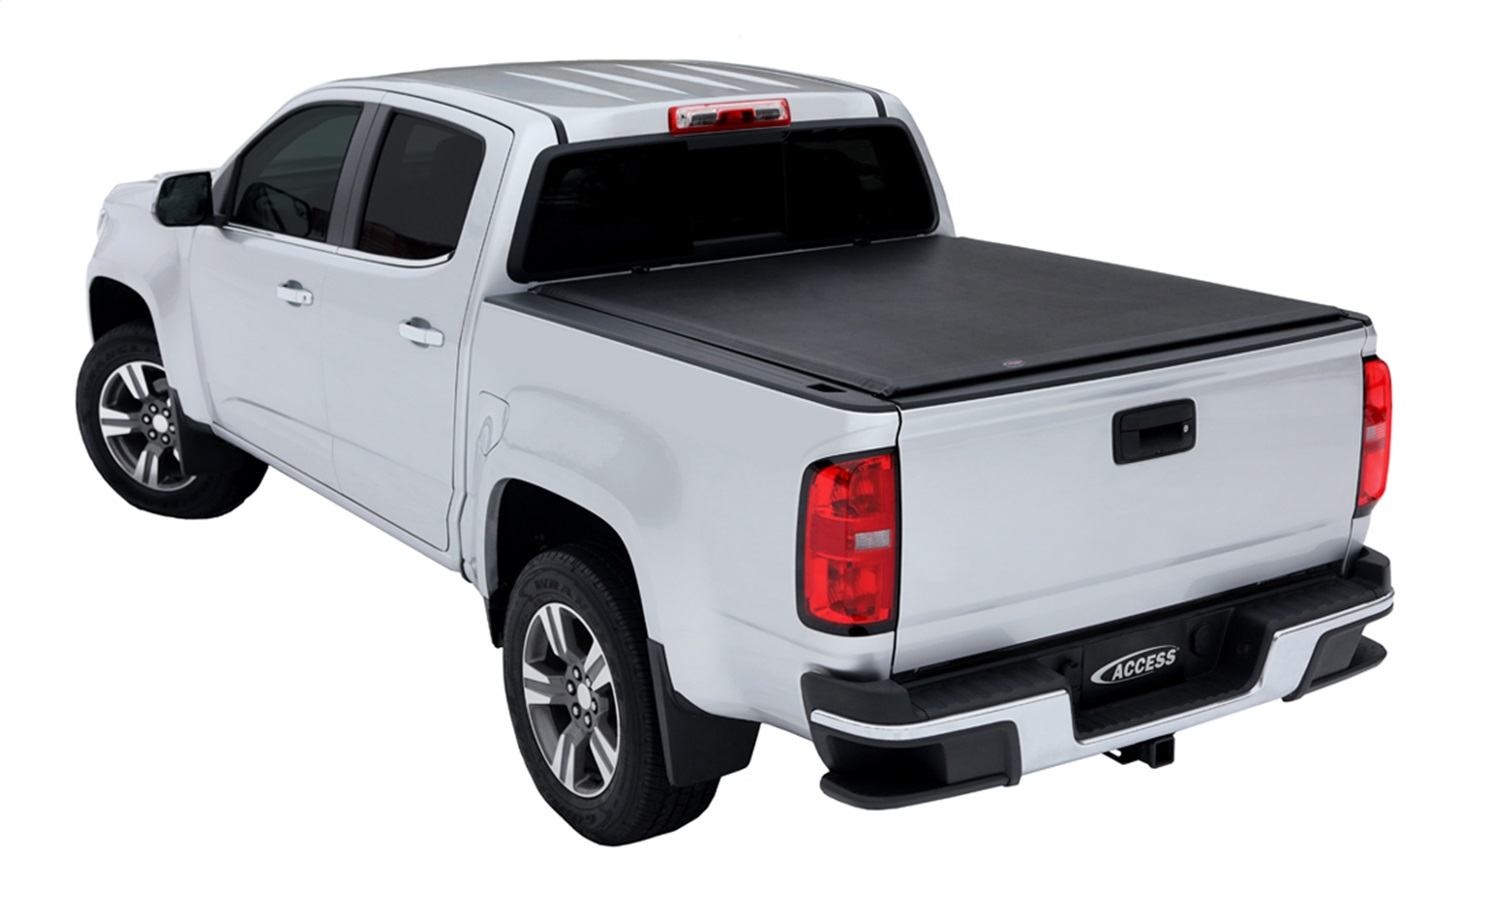 2020 GMC CANYON Crew Cab 5ft Bed WATERPROOF TRUCK COVER | eBay |2020 Gmc Crew Cab Tonneau Cover